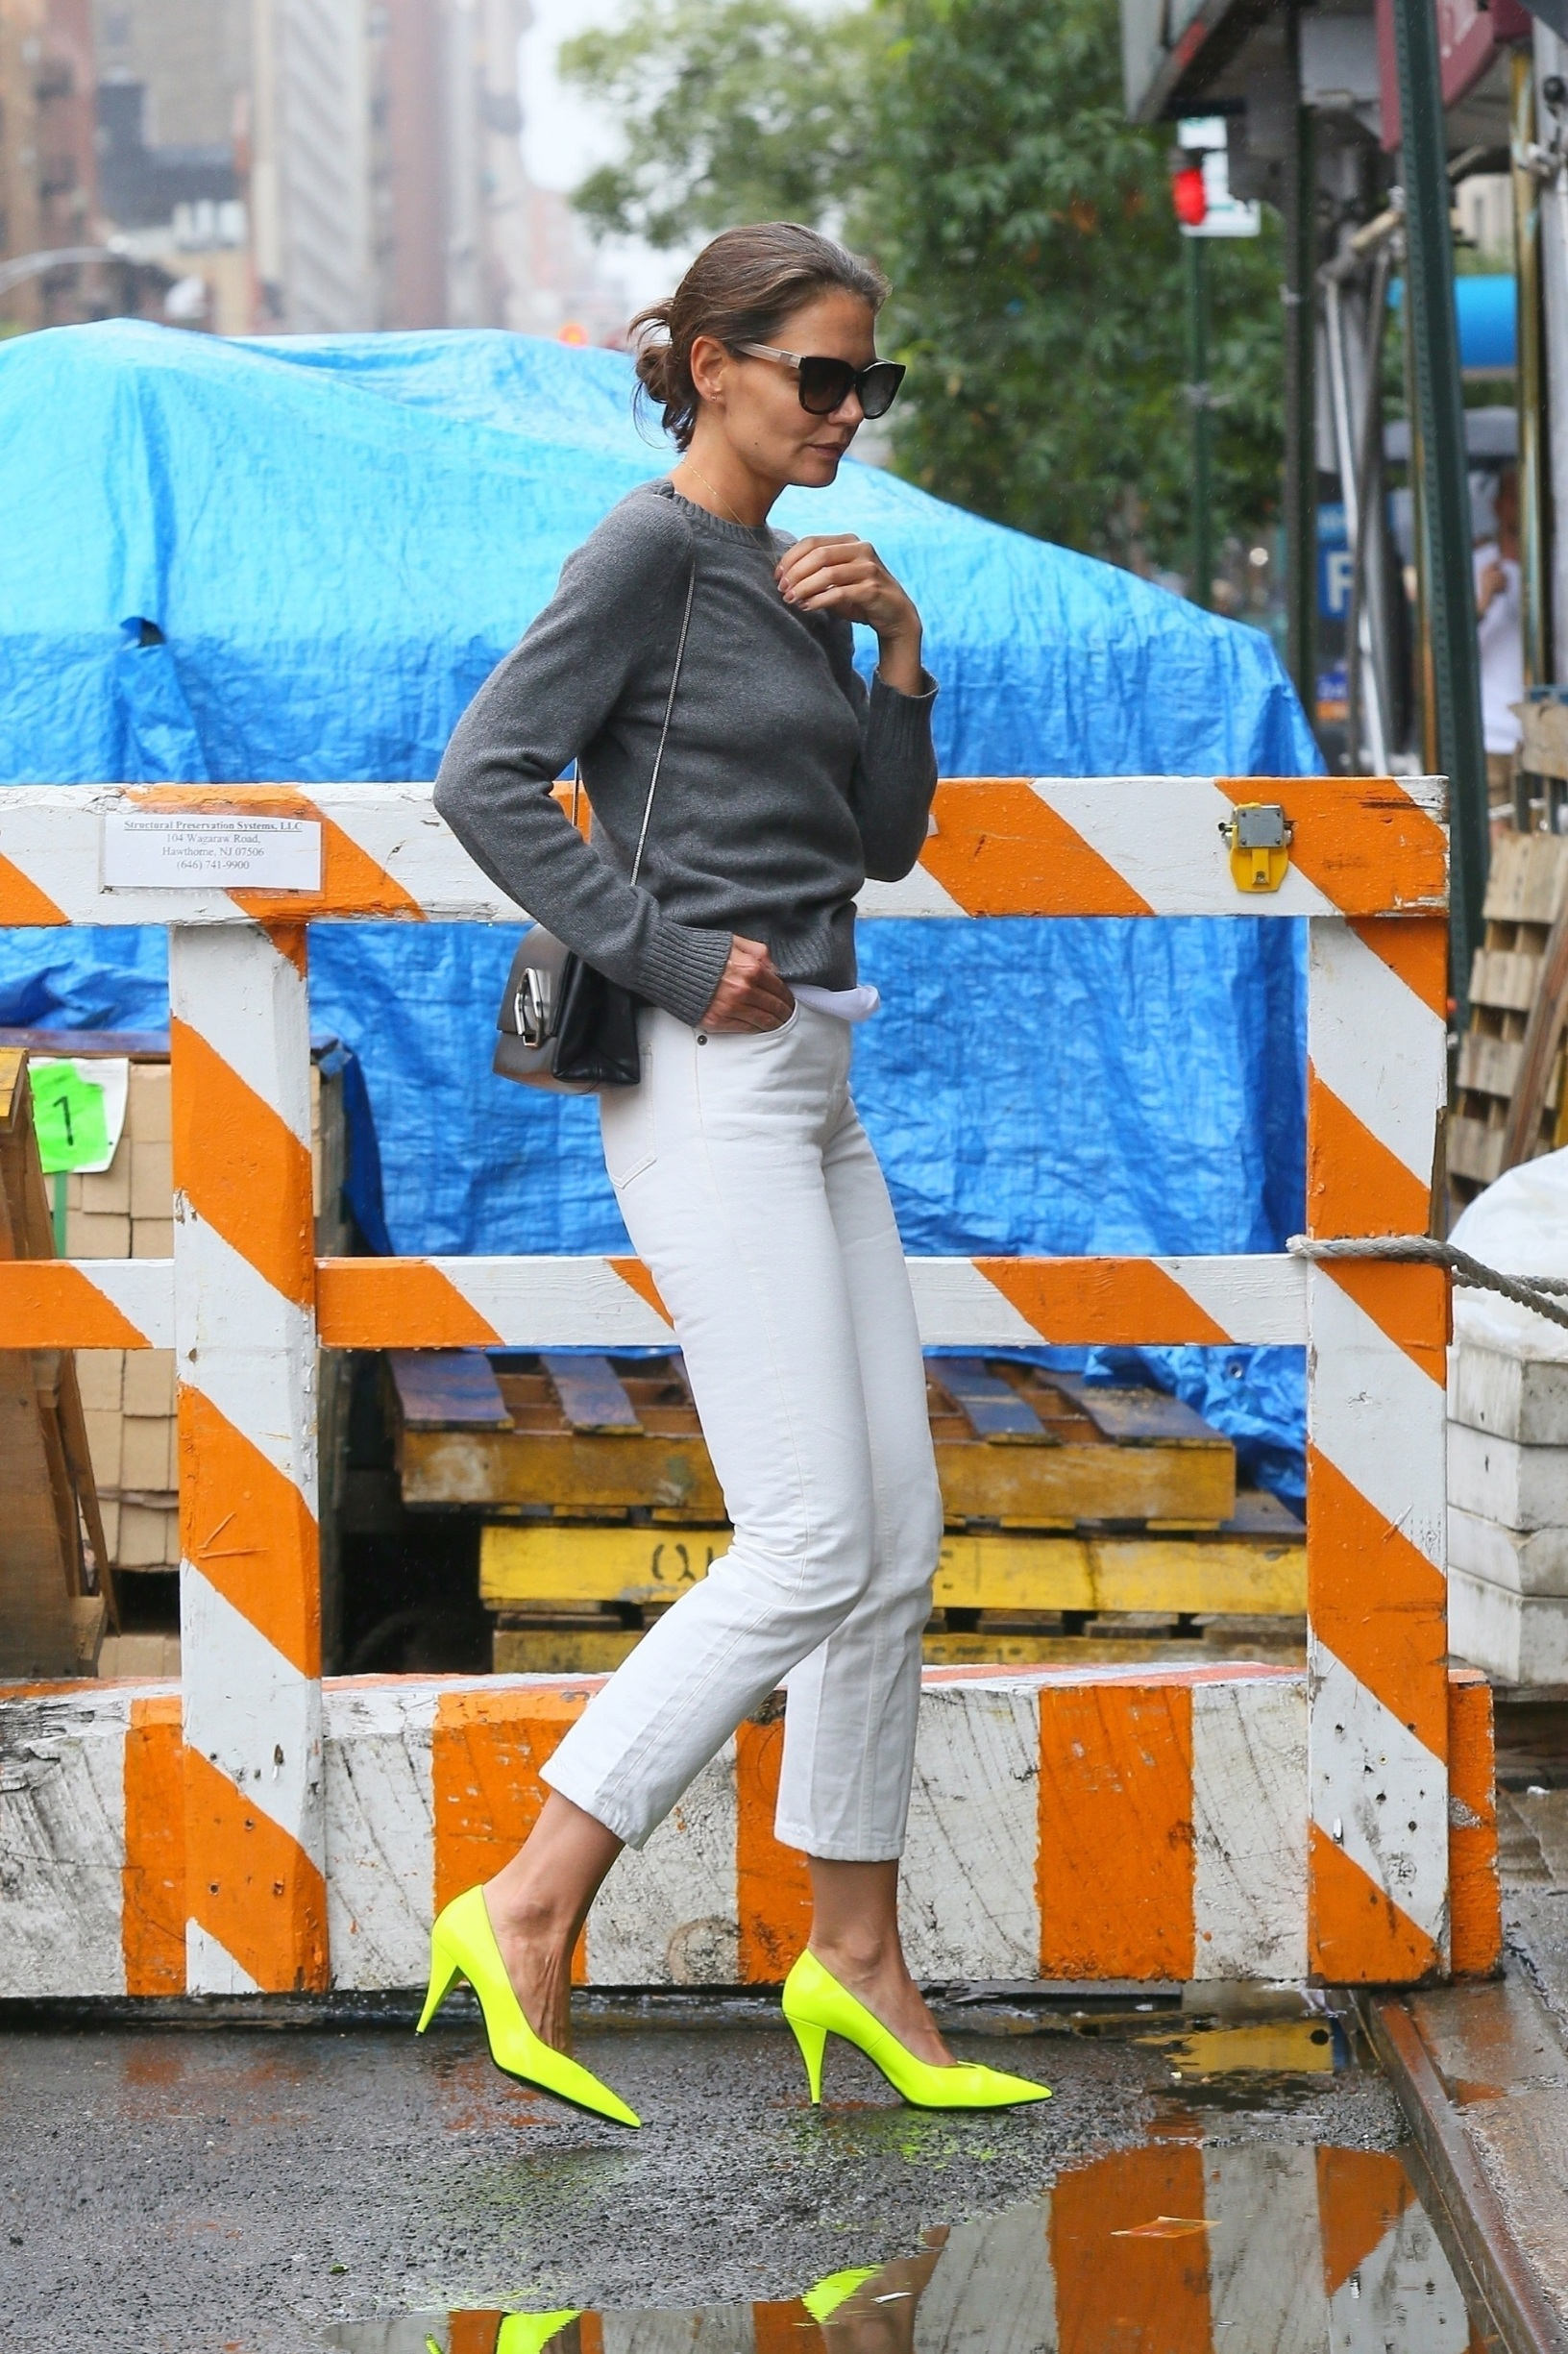 New York, NY  - *EXCLUSIVE* Katie Holmes steps out with style on a rainy day in New York for a trip to Serge Normant at John Frieda Salon, wearing yellow heels with white denim and a grey sweater.  BACKGRID USA 28 AUGUST 2019, Image: 467762458, License: Rights-managed, Restrictions: , Model Release: no, Credit line: Profimedia, Backgrid USA